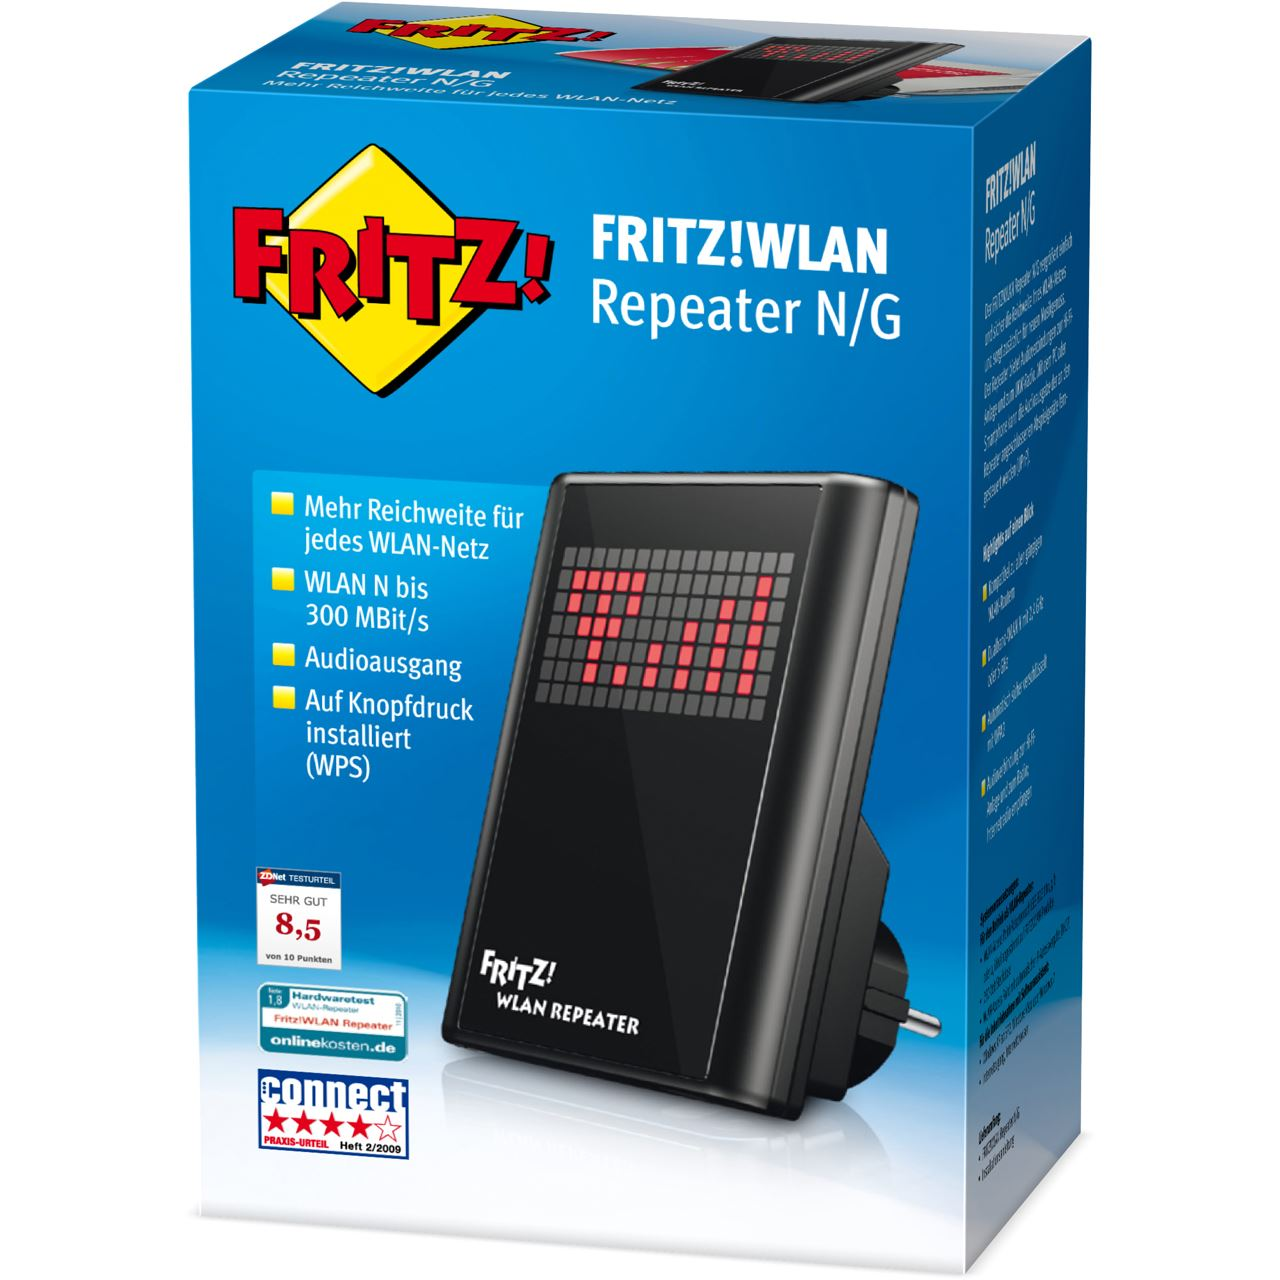 avm fritz wlan repeater n g wlan 300mbit s repeater konverter hardware notebooks software. Black Bedroom Furniture Sets. Home Design Ideas